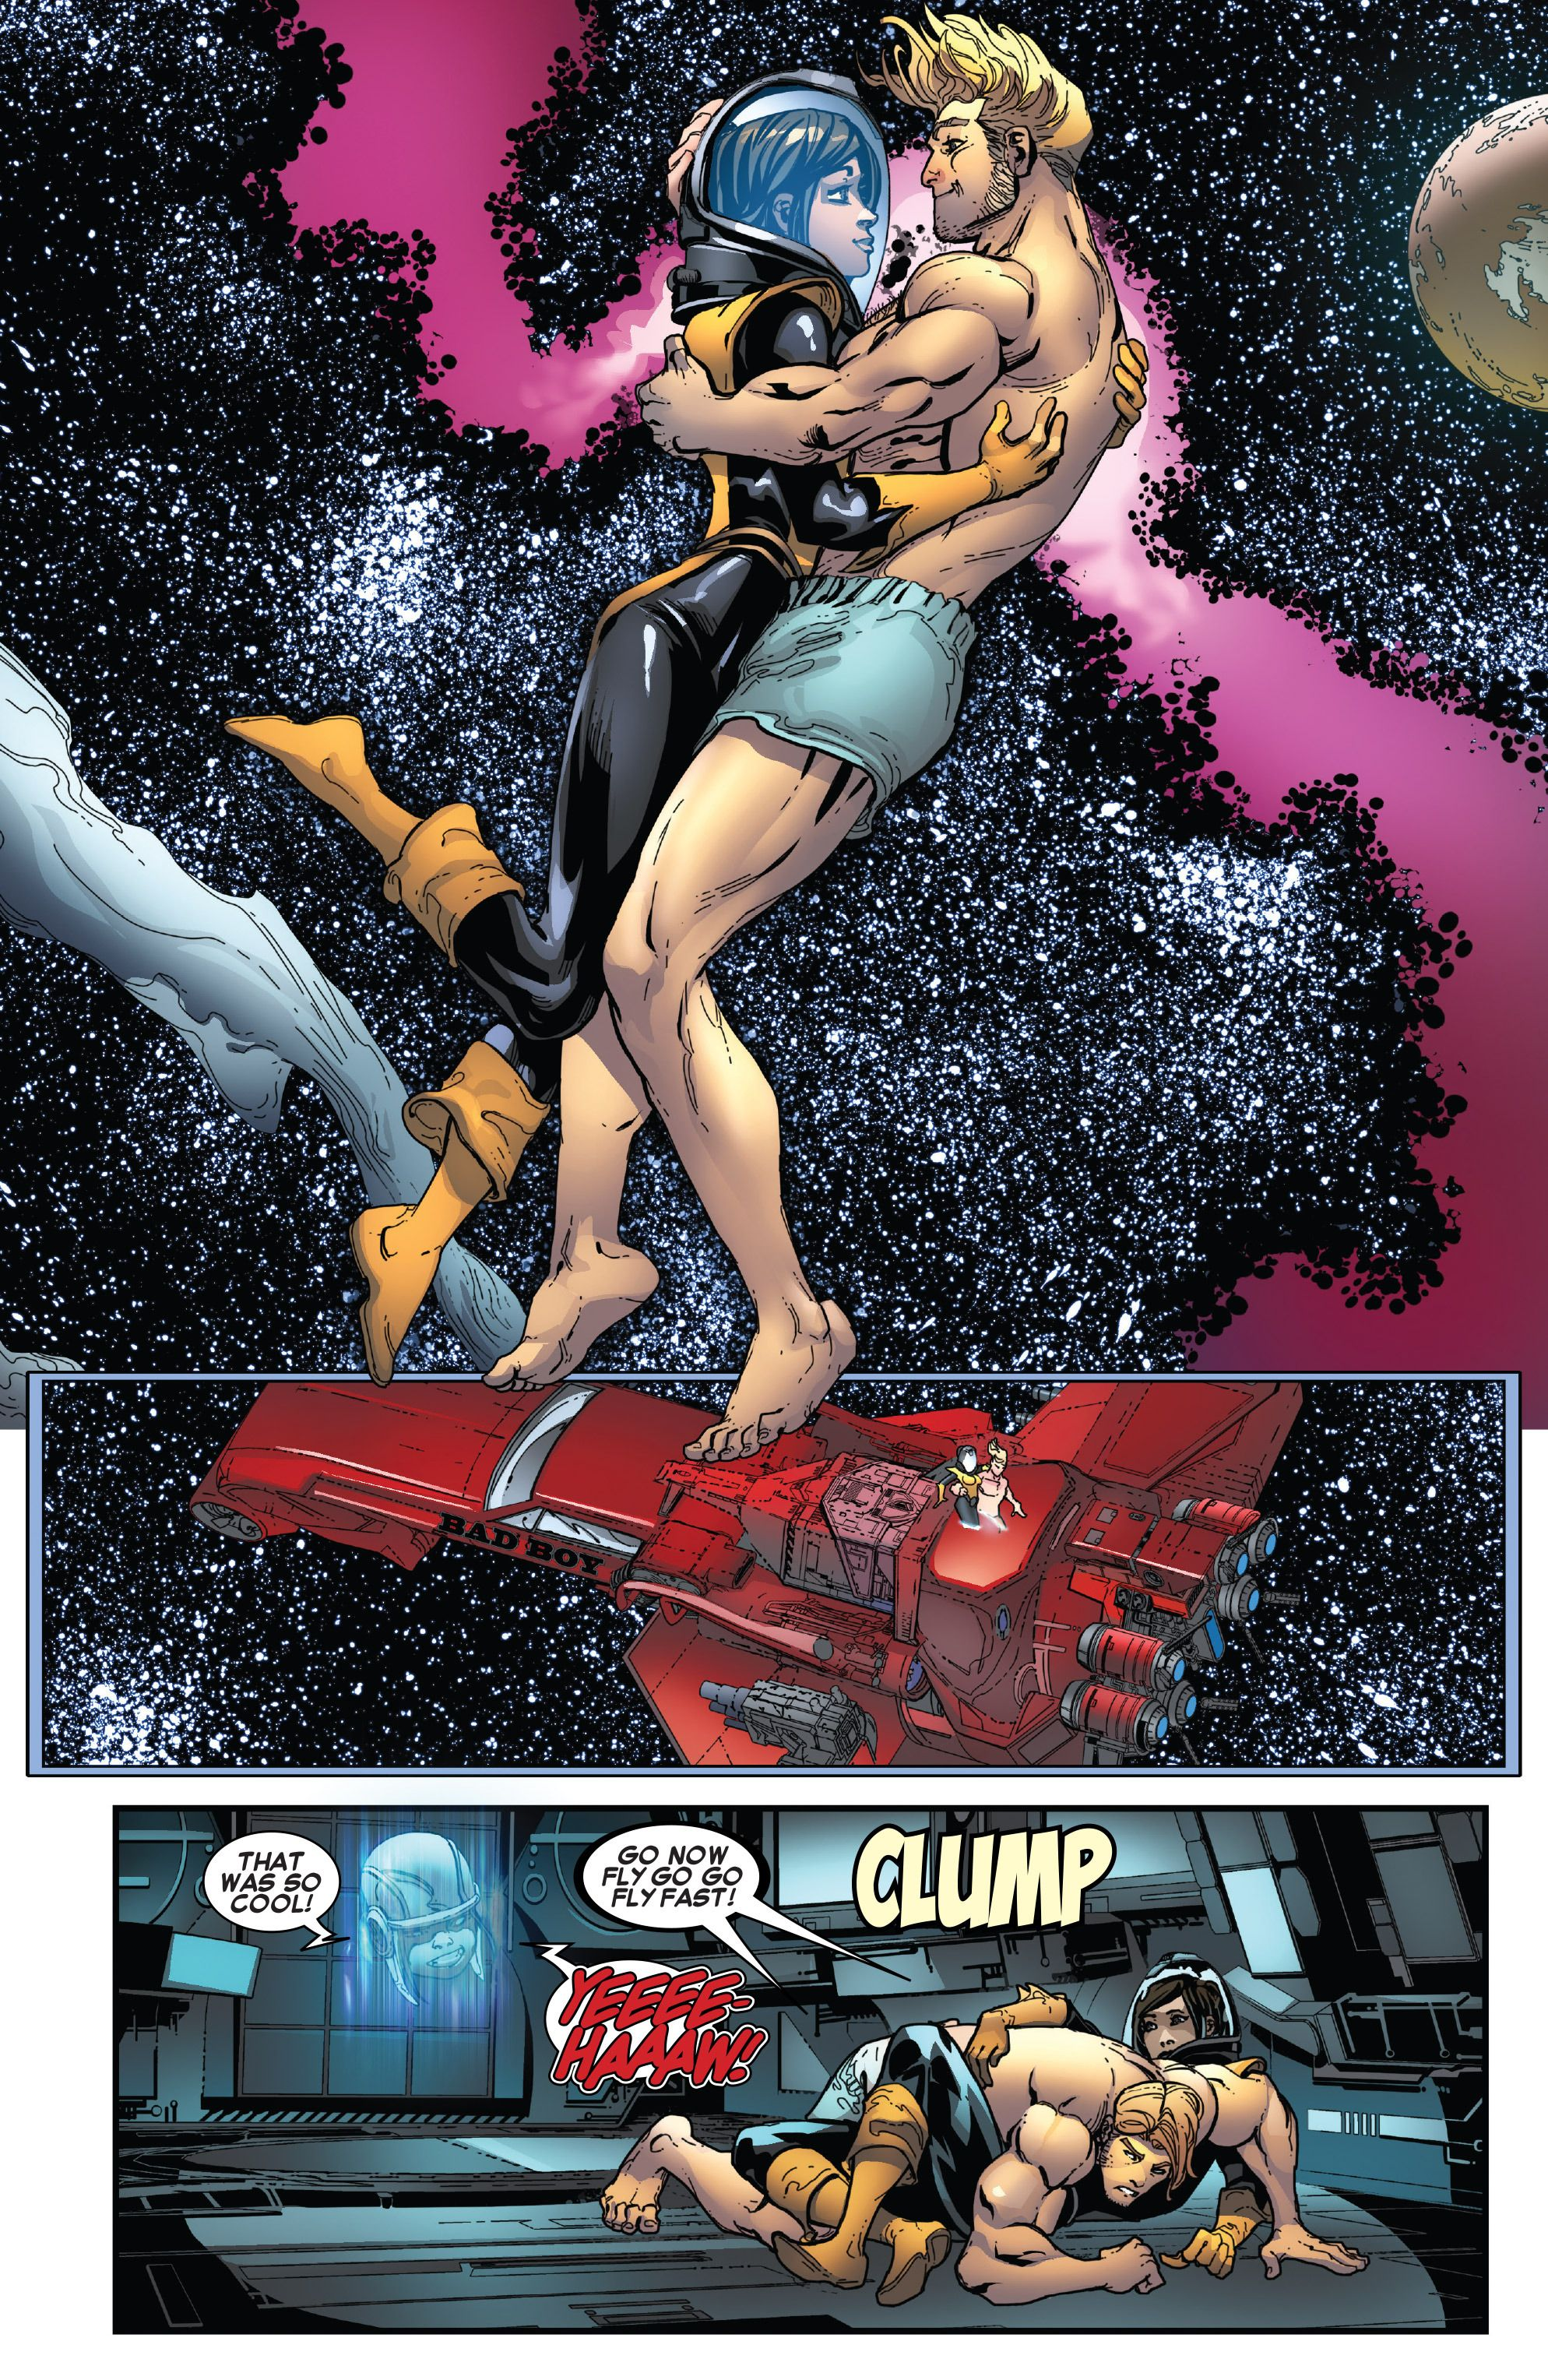 Legendary Star Lord 7 Read Legendary Star Lord Issue 7 Online Star Lord Super Villains Kitty Pryde